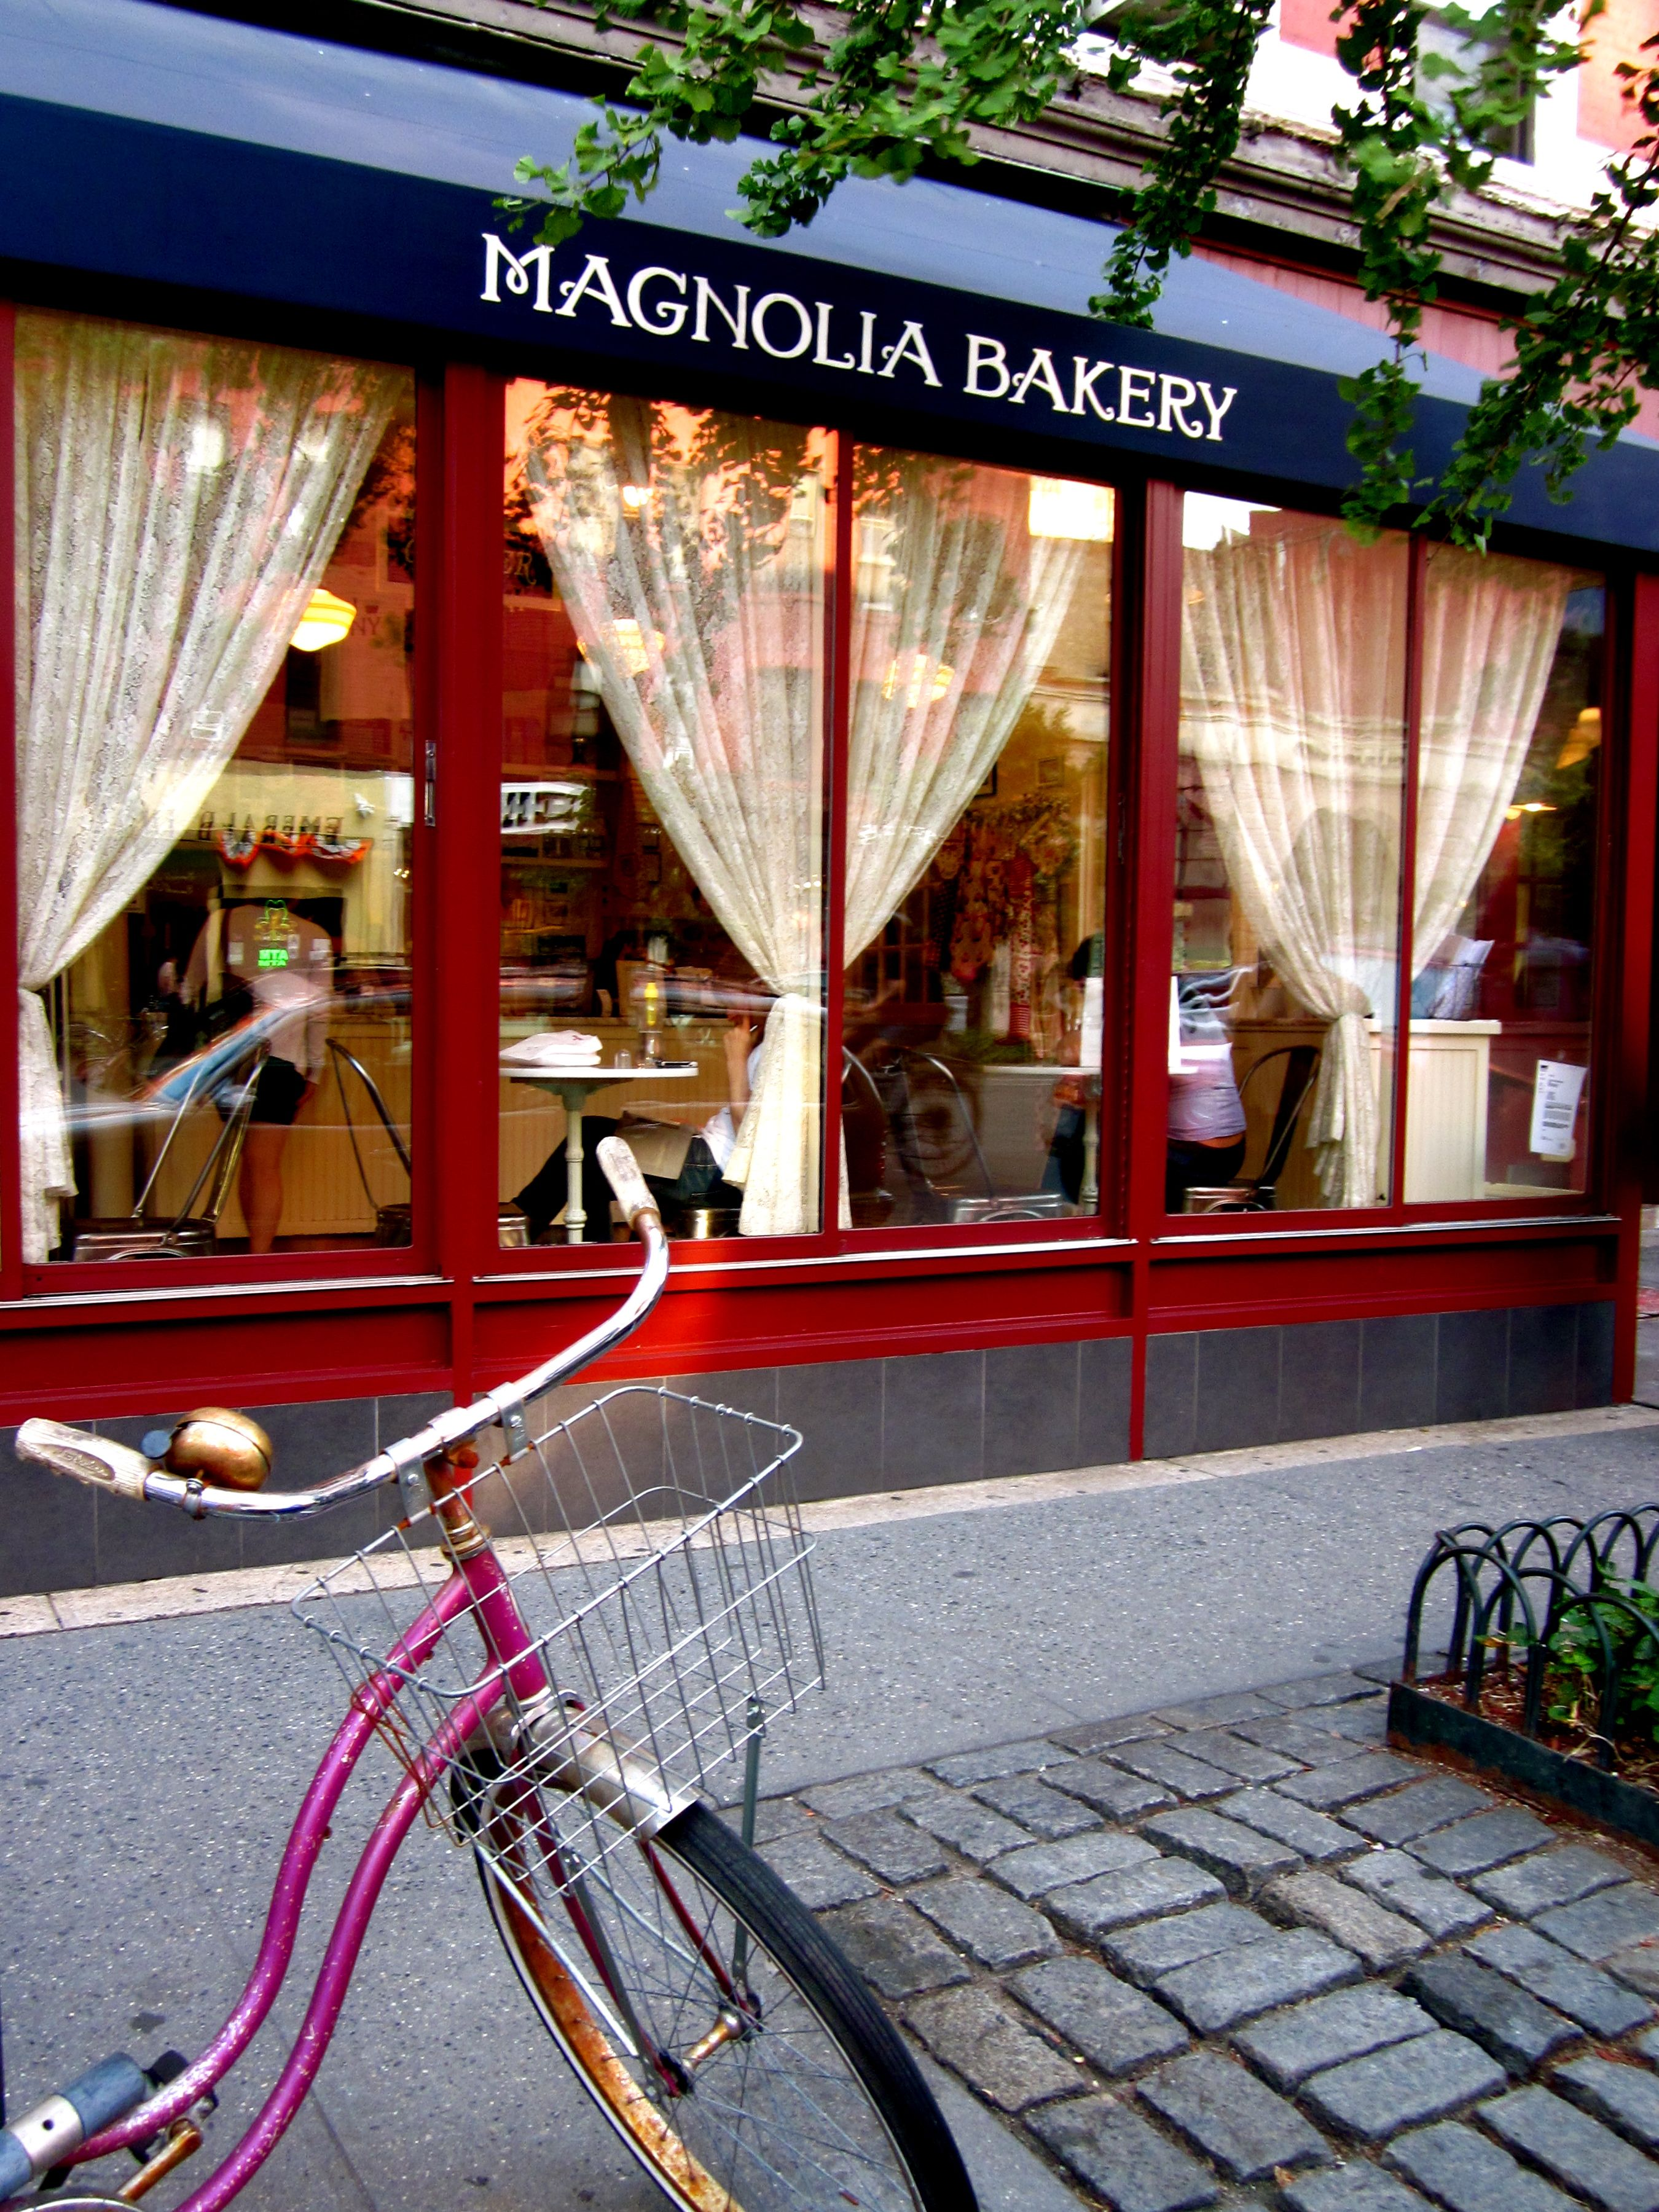 Magnolia Bakery, NYC  I wanted to try this place, like most tourists